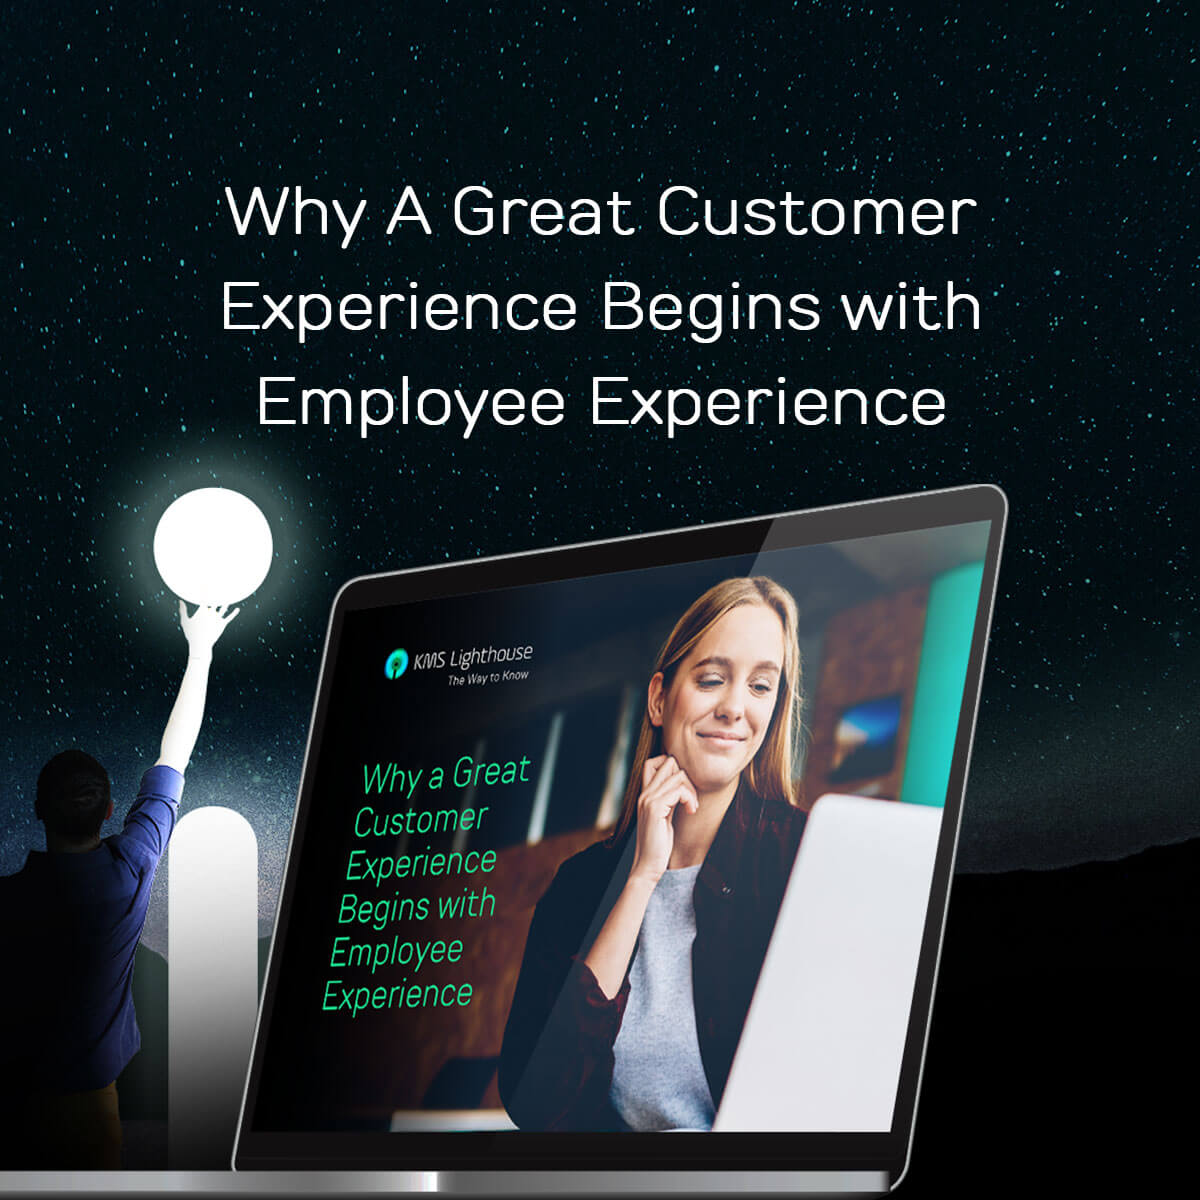 Why A Great Customer Experience Begins with Employee Experience